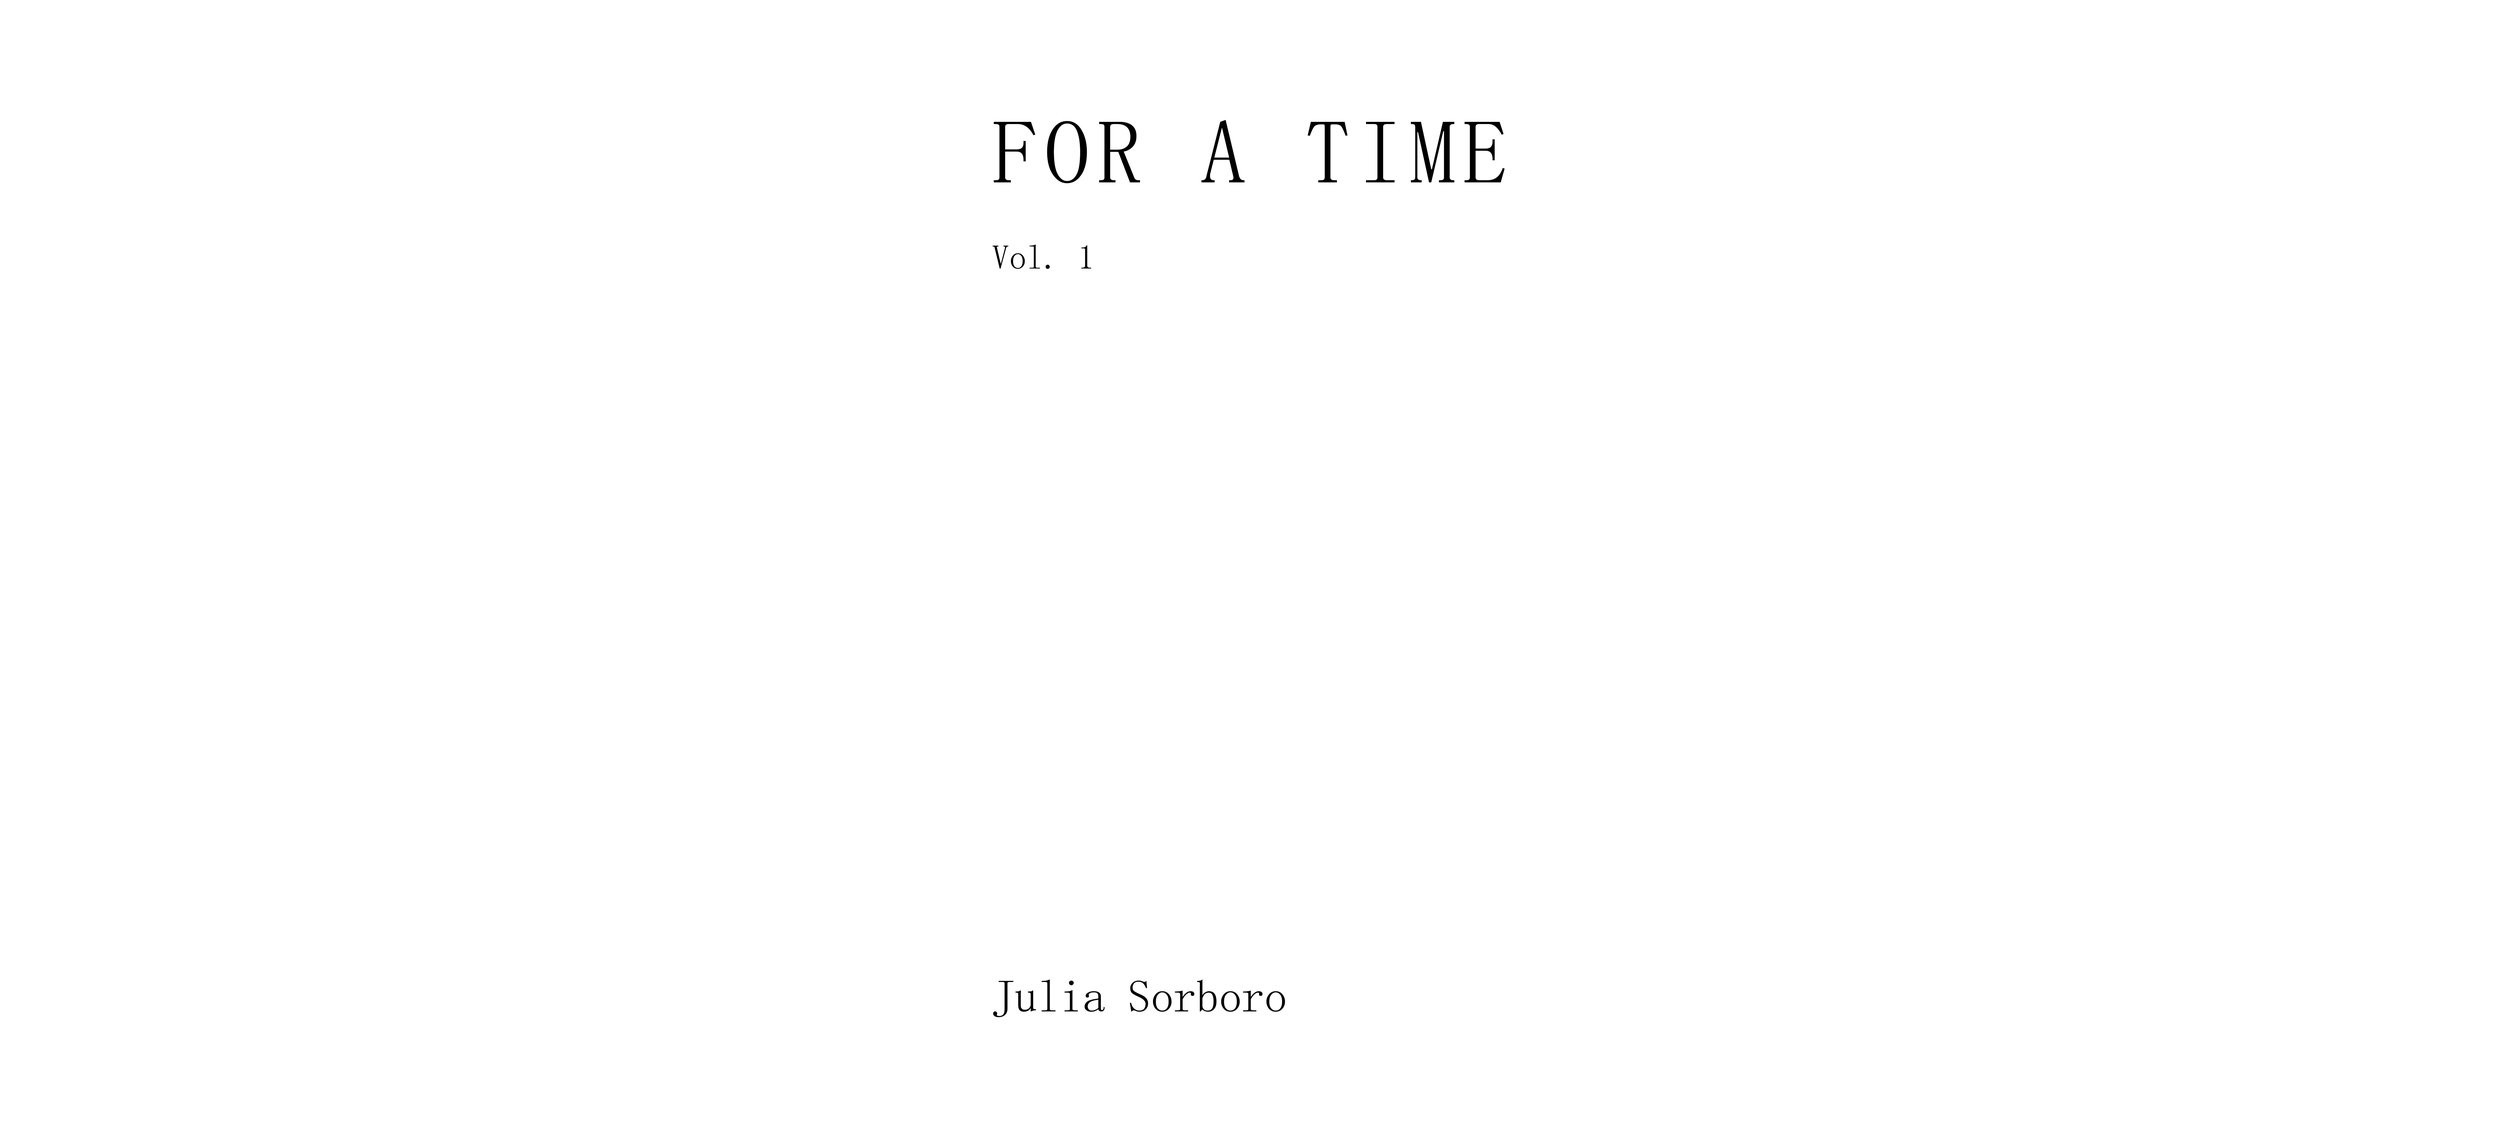 For A Time  is a series of zines featuring Sorboro's writing and photography. They are released periodically, and meant to be enjoyed in conjunction with her visual works.